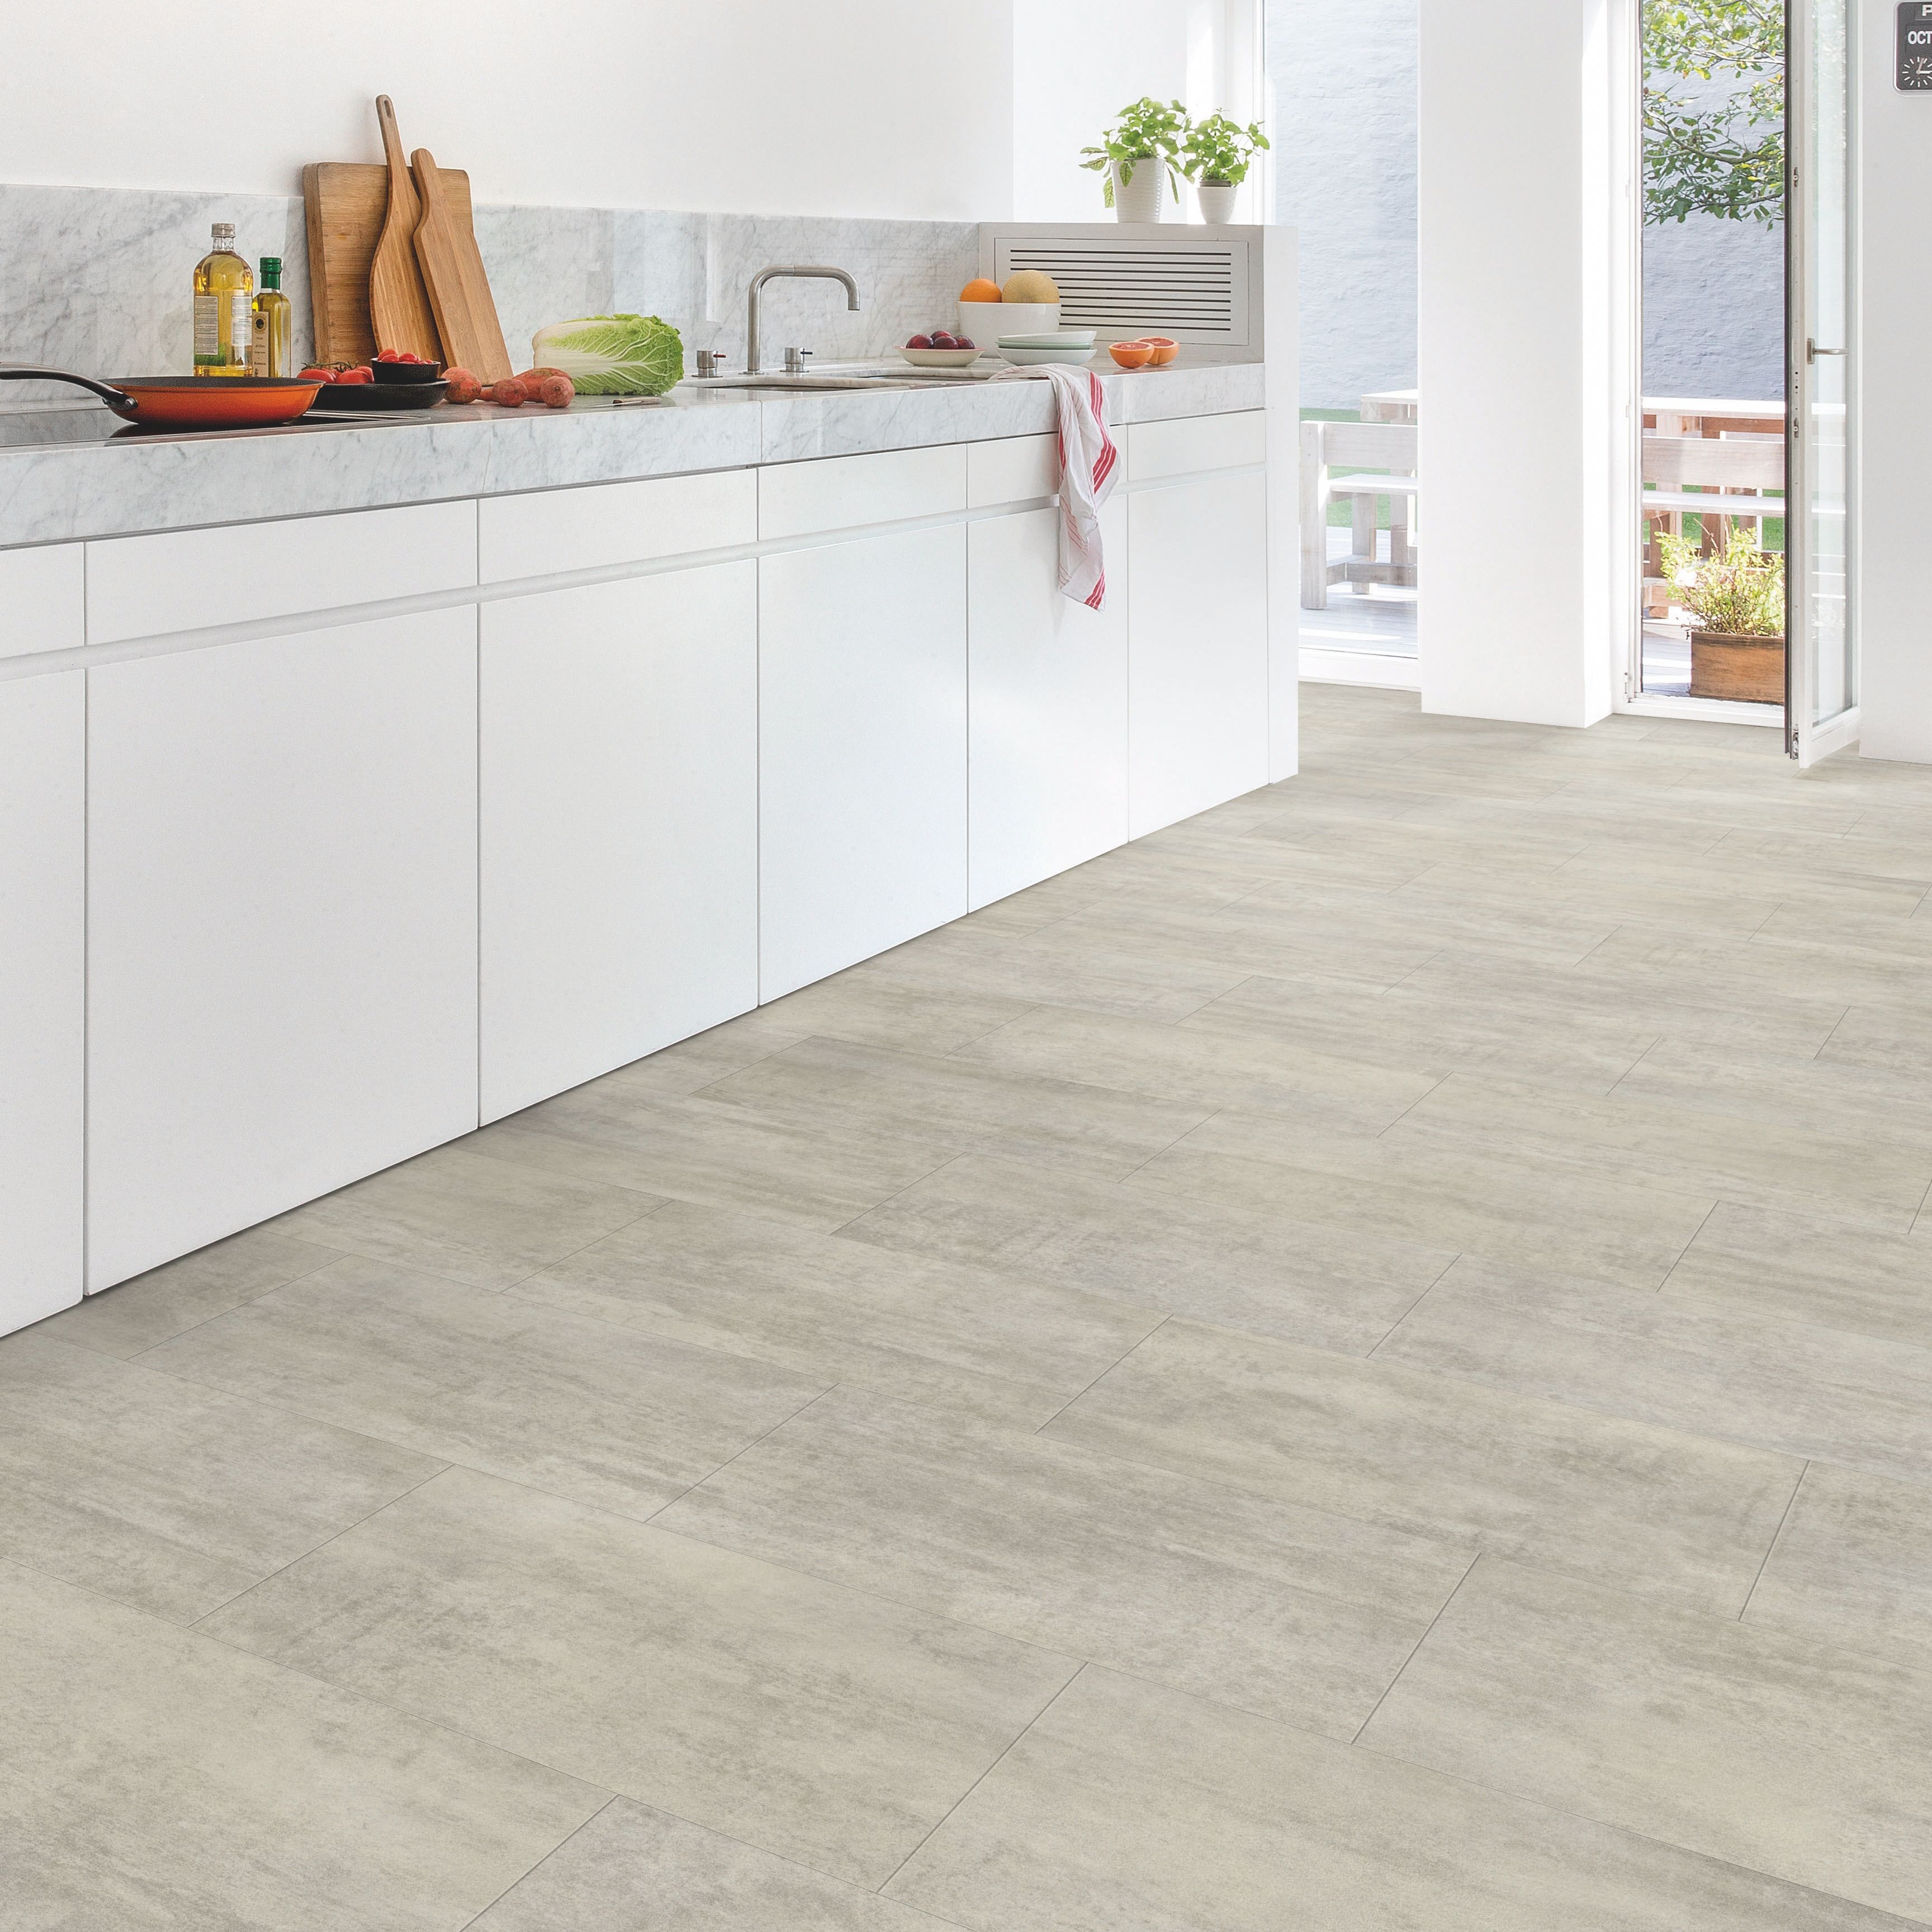 step lima grey travertine effect matt waterproof luxury vinyl tile